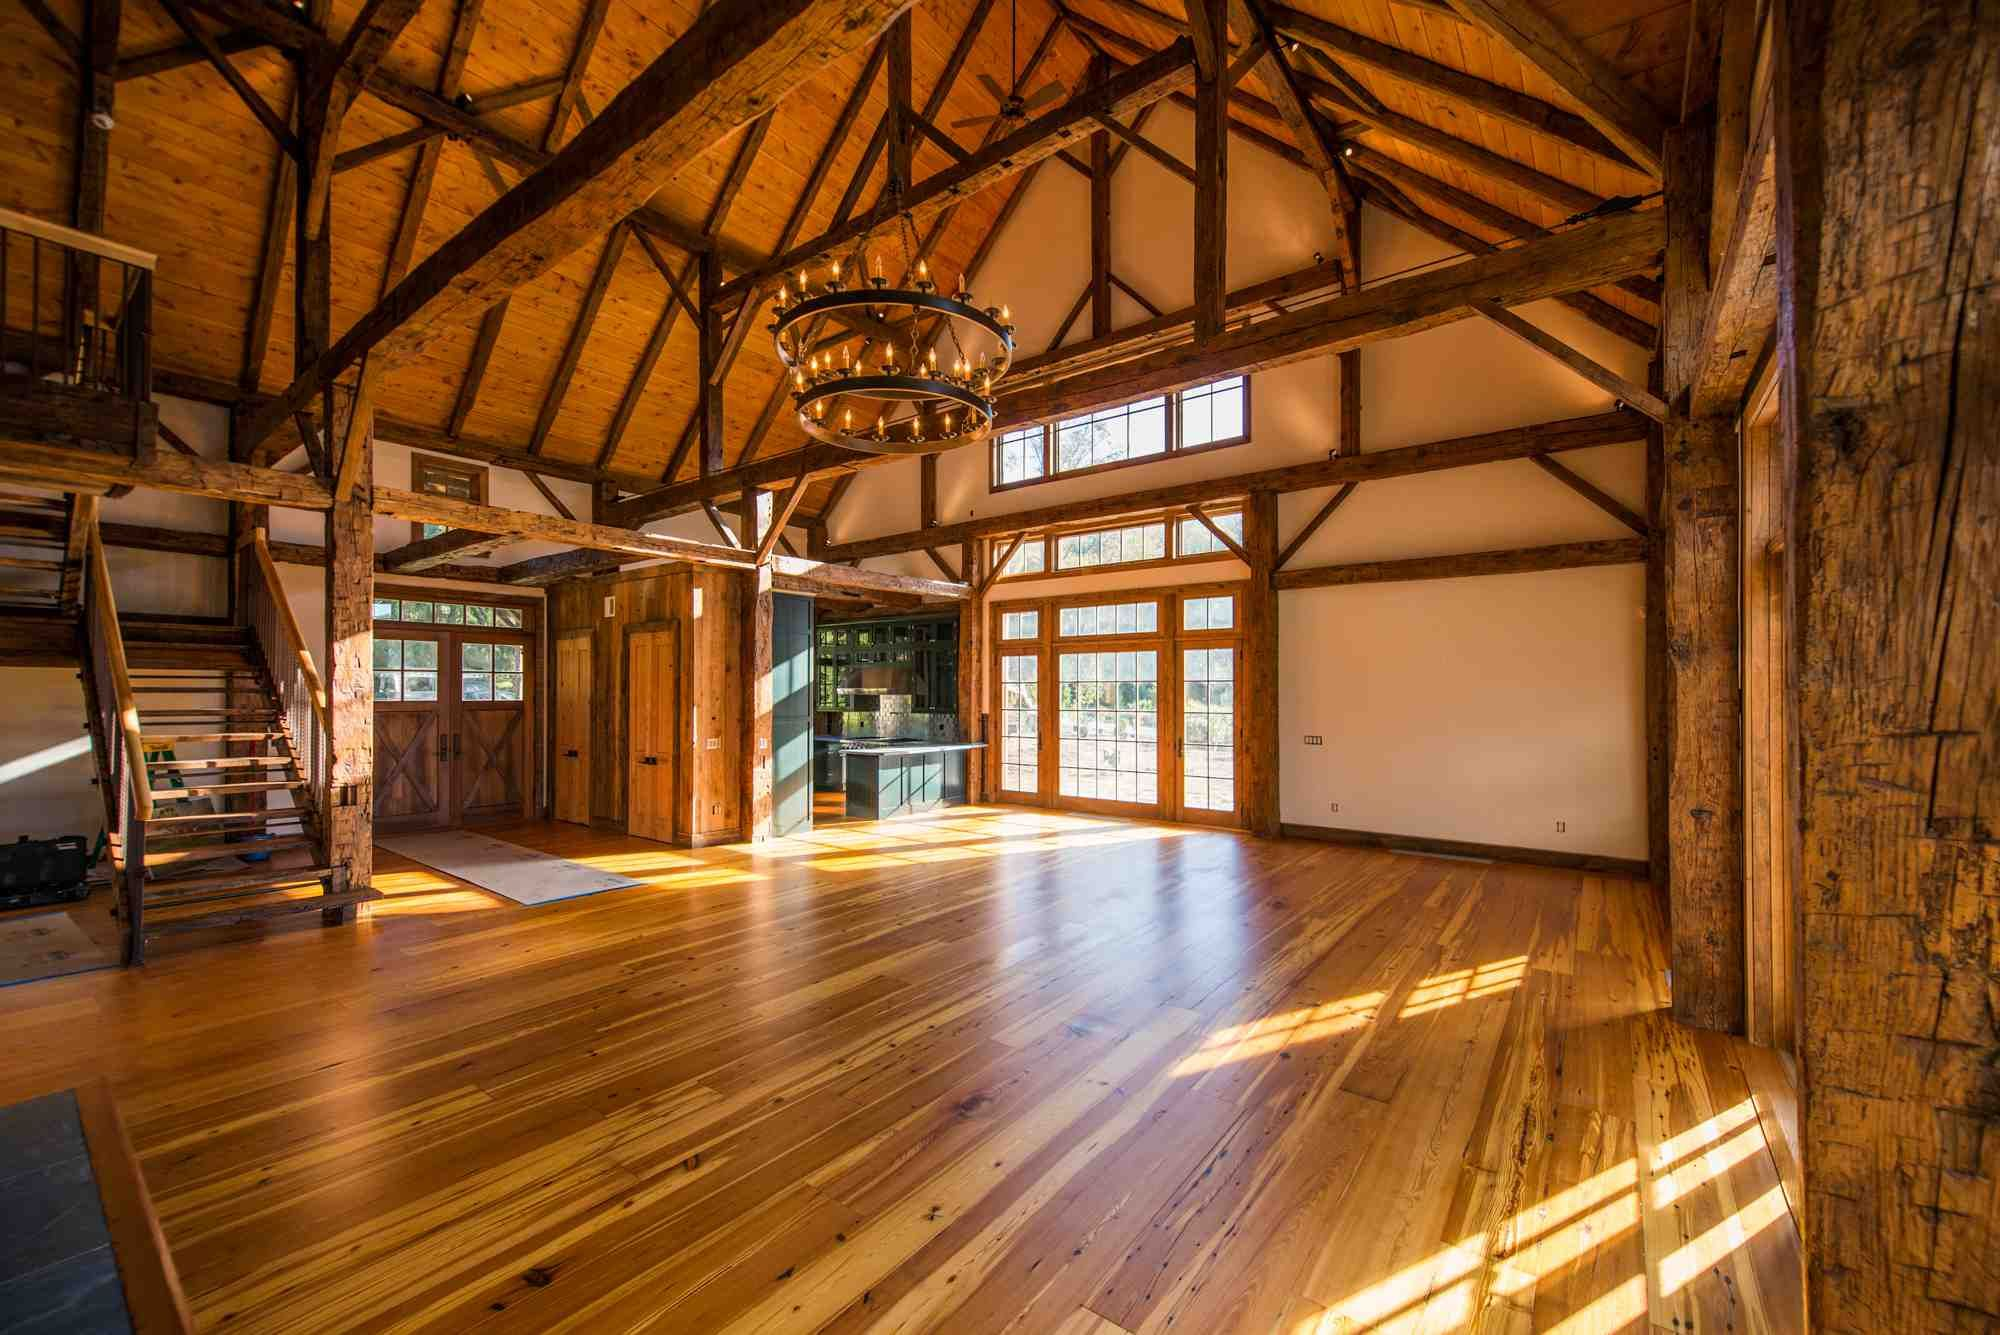 Home Design Ideas Vintage Chandelier Hanging Penadant Fixture Barns Turned Into Houses Wooden Glossy Dtripe